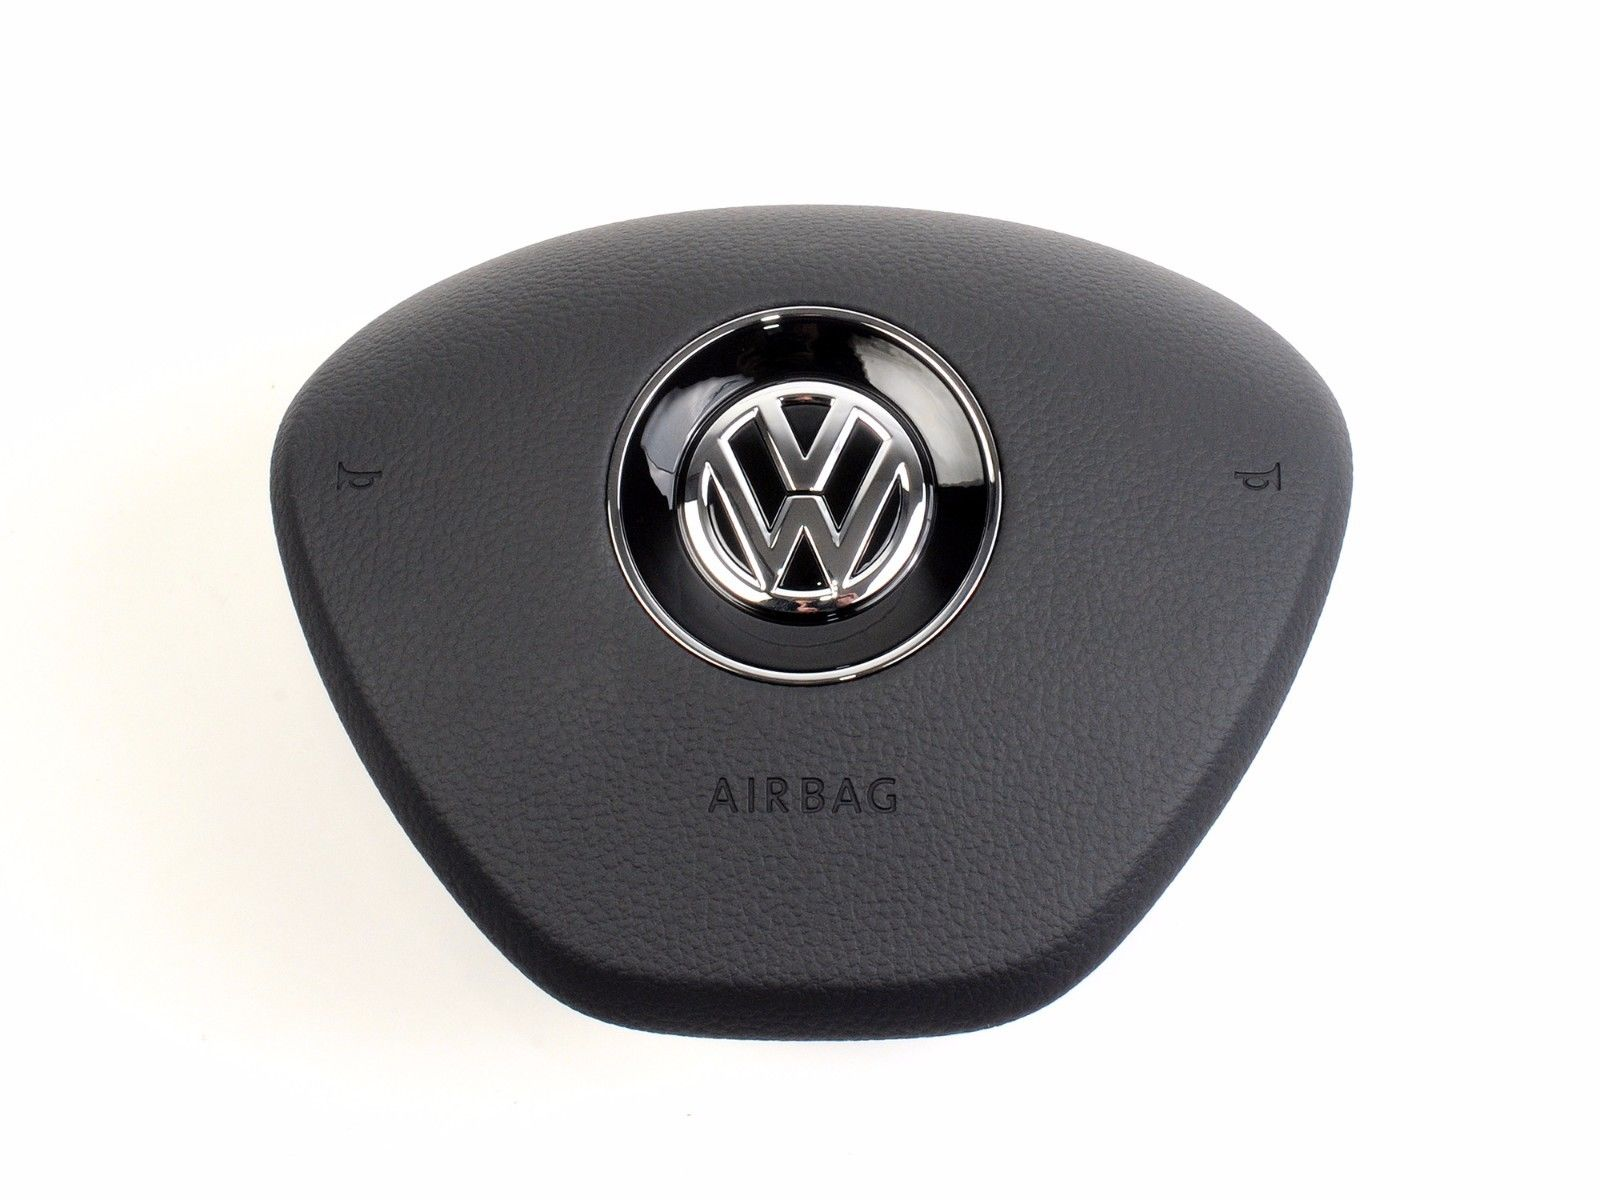 New Volkswagen Golf / E-Golf / Sportsvan / Passat Steering Wheel Airbag | 7E0880201